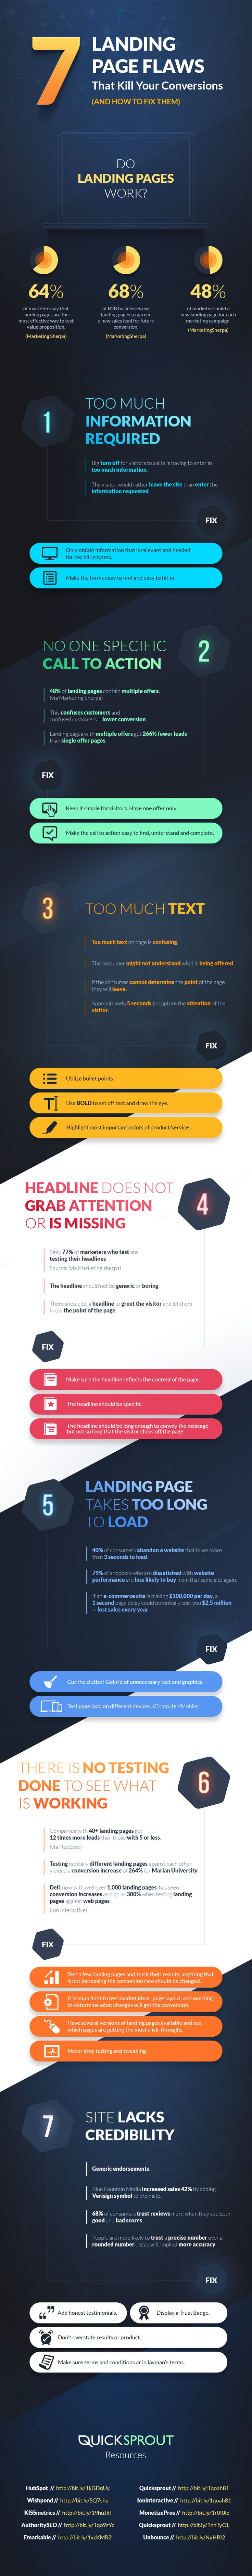 7 #LandingPage Flaws that Kill Your #Conversions (and How to Fix Them)